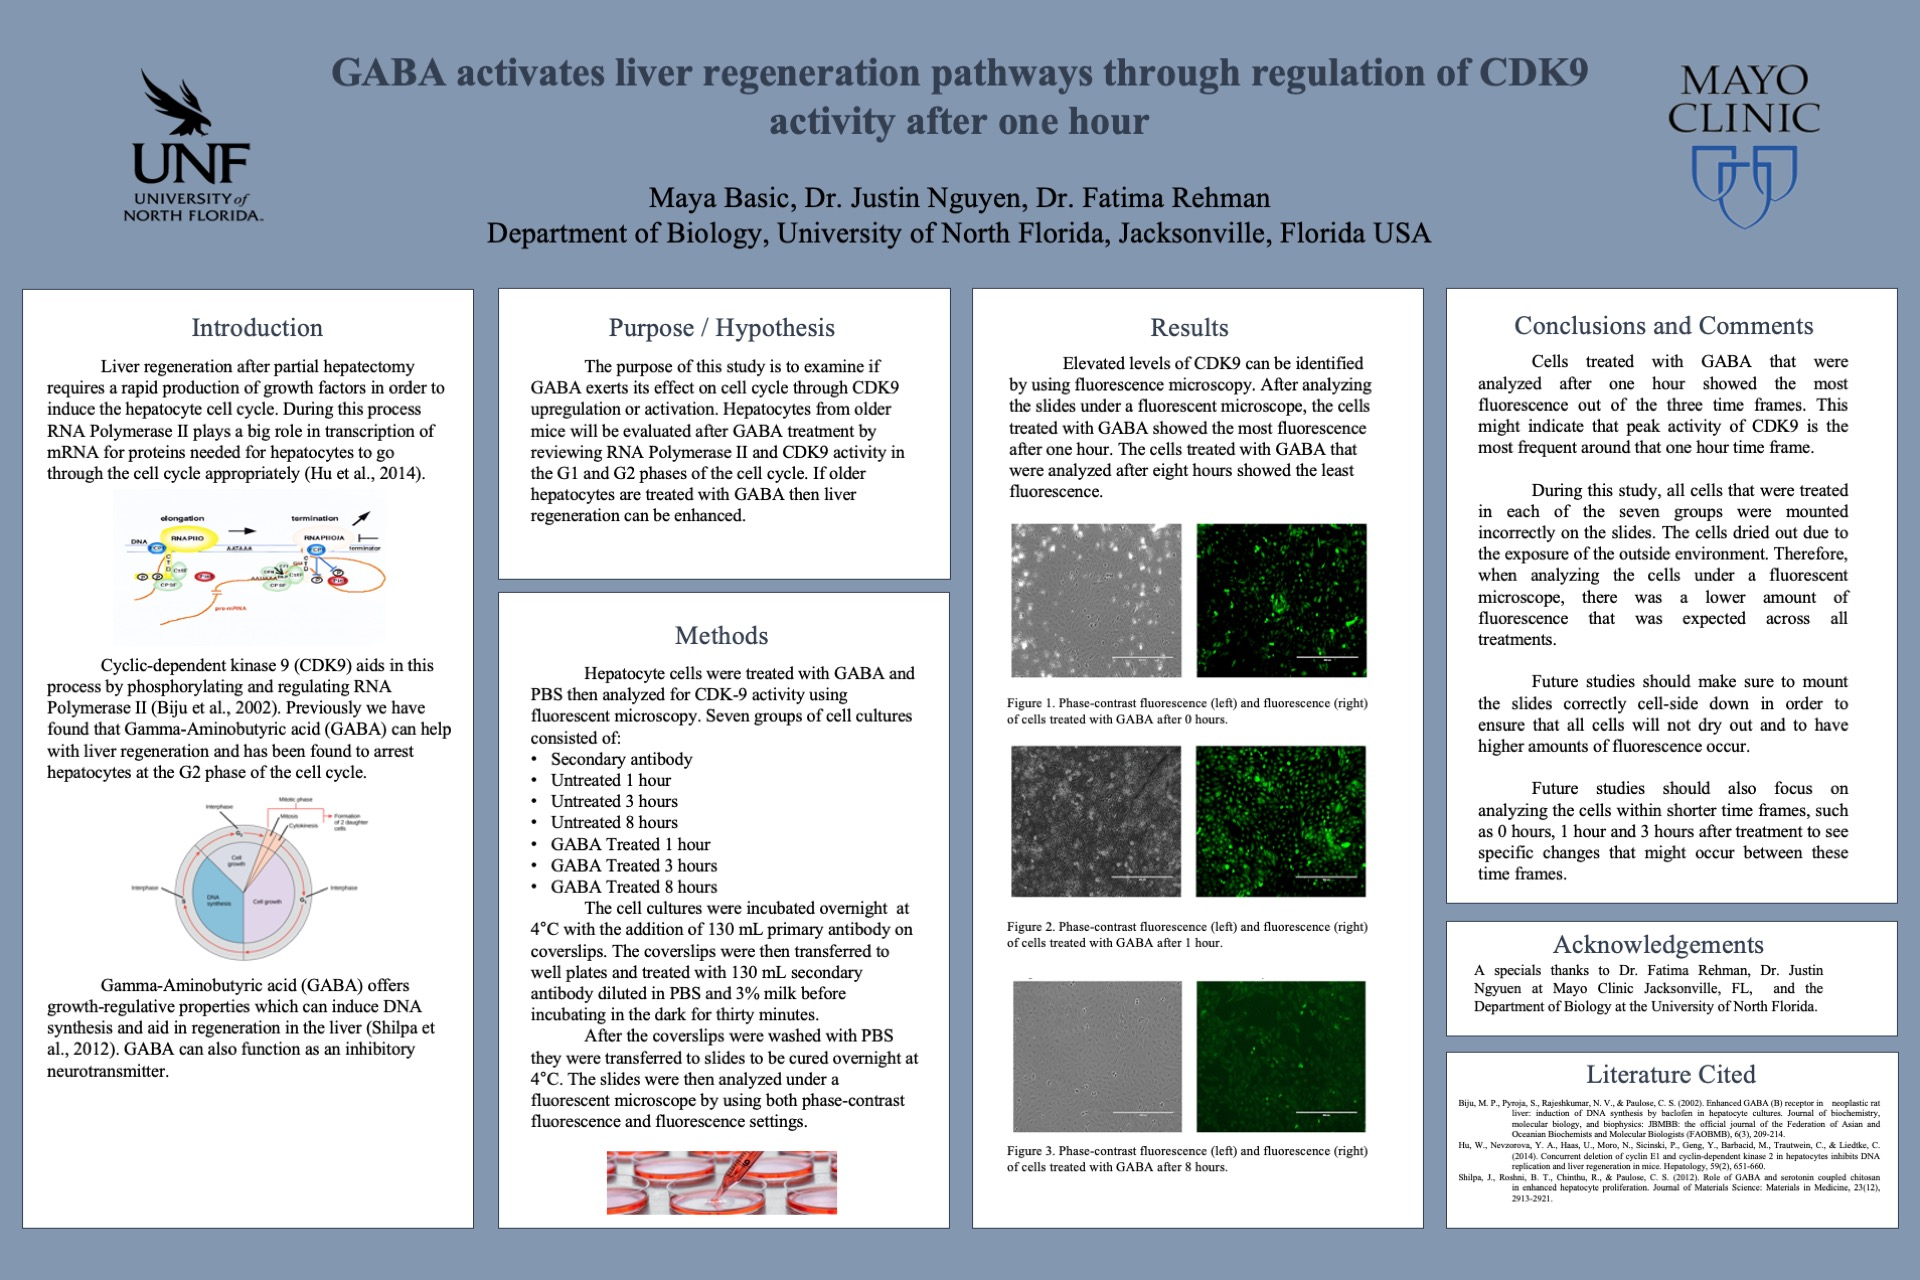 GABA activates liver regeneration pathways through regulation of CDK9 activity after one hour poster